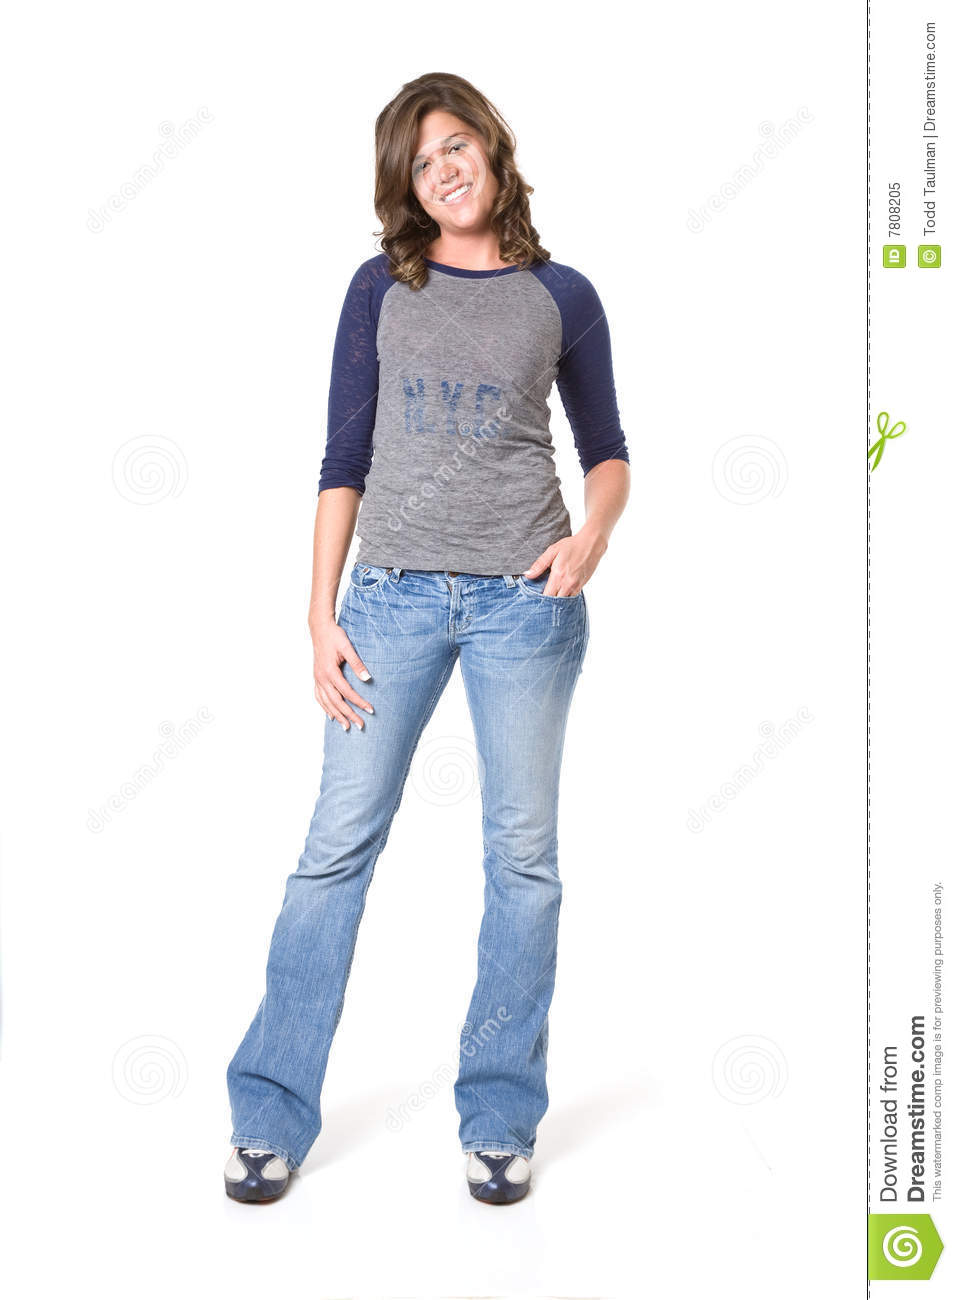 Casual Female In Jeans And T-shirt Royalty Free Stock Photo - Image 7808205